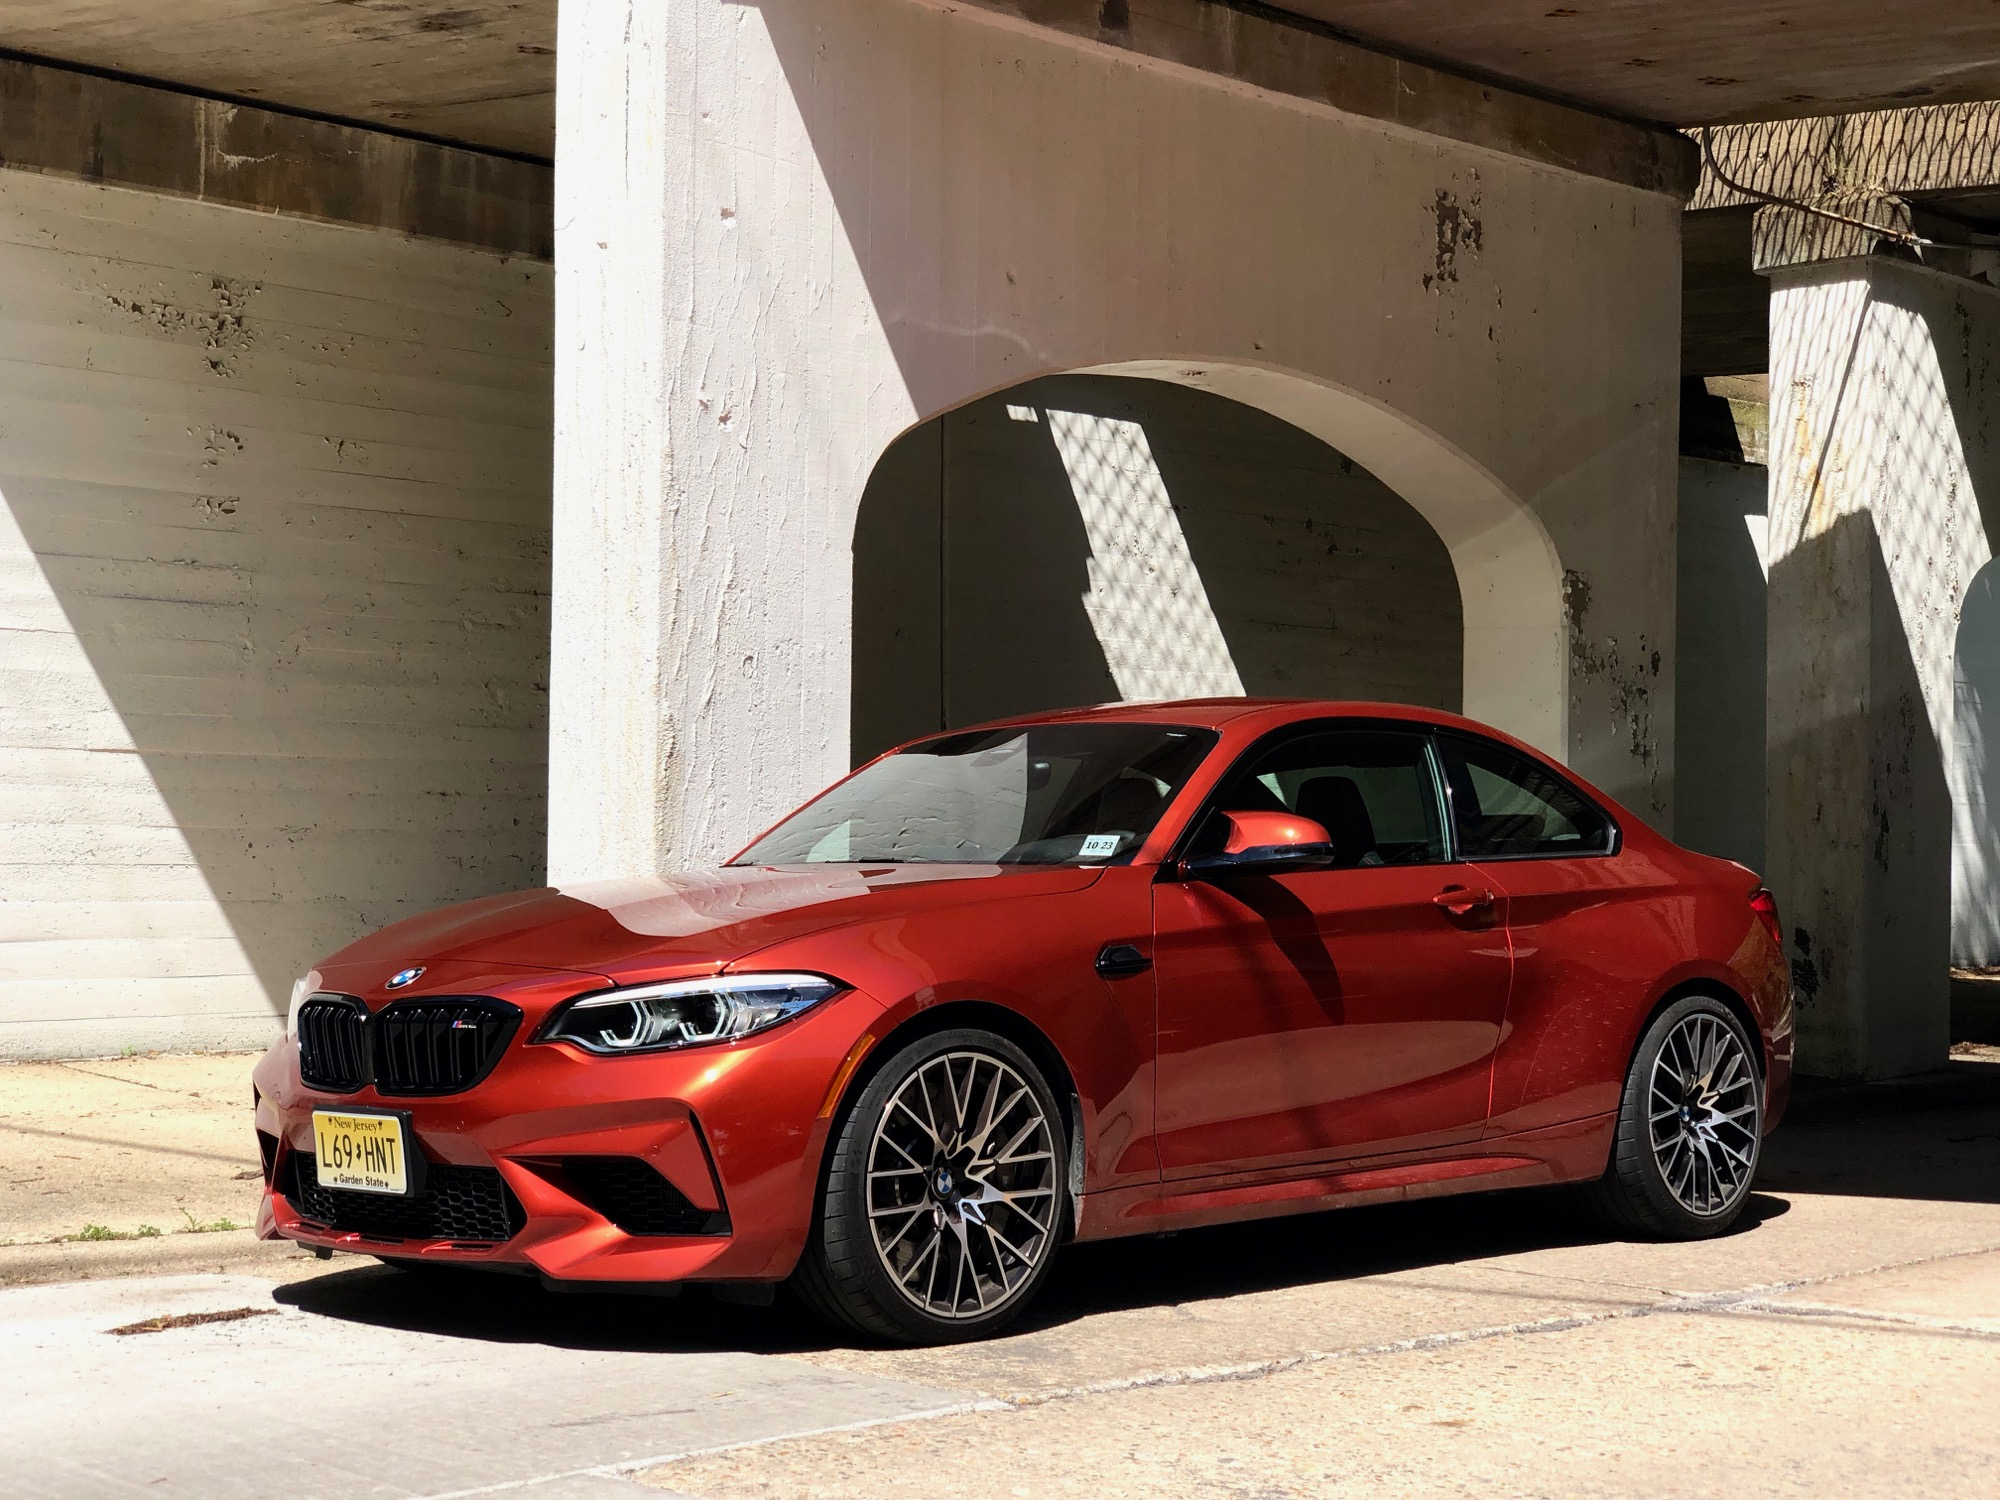 2021 Bmw 2 Series Pricing And Equipment Changes Bimmerfile